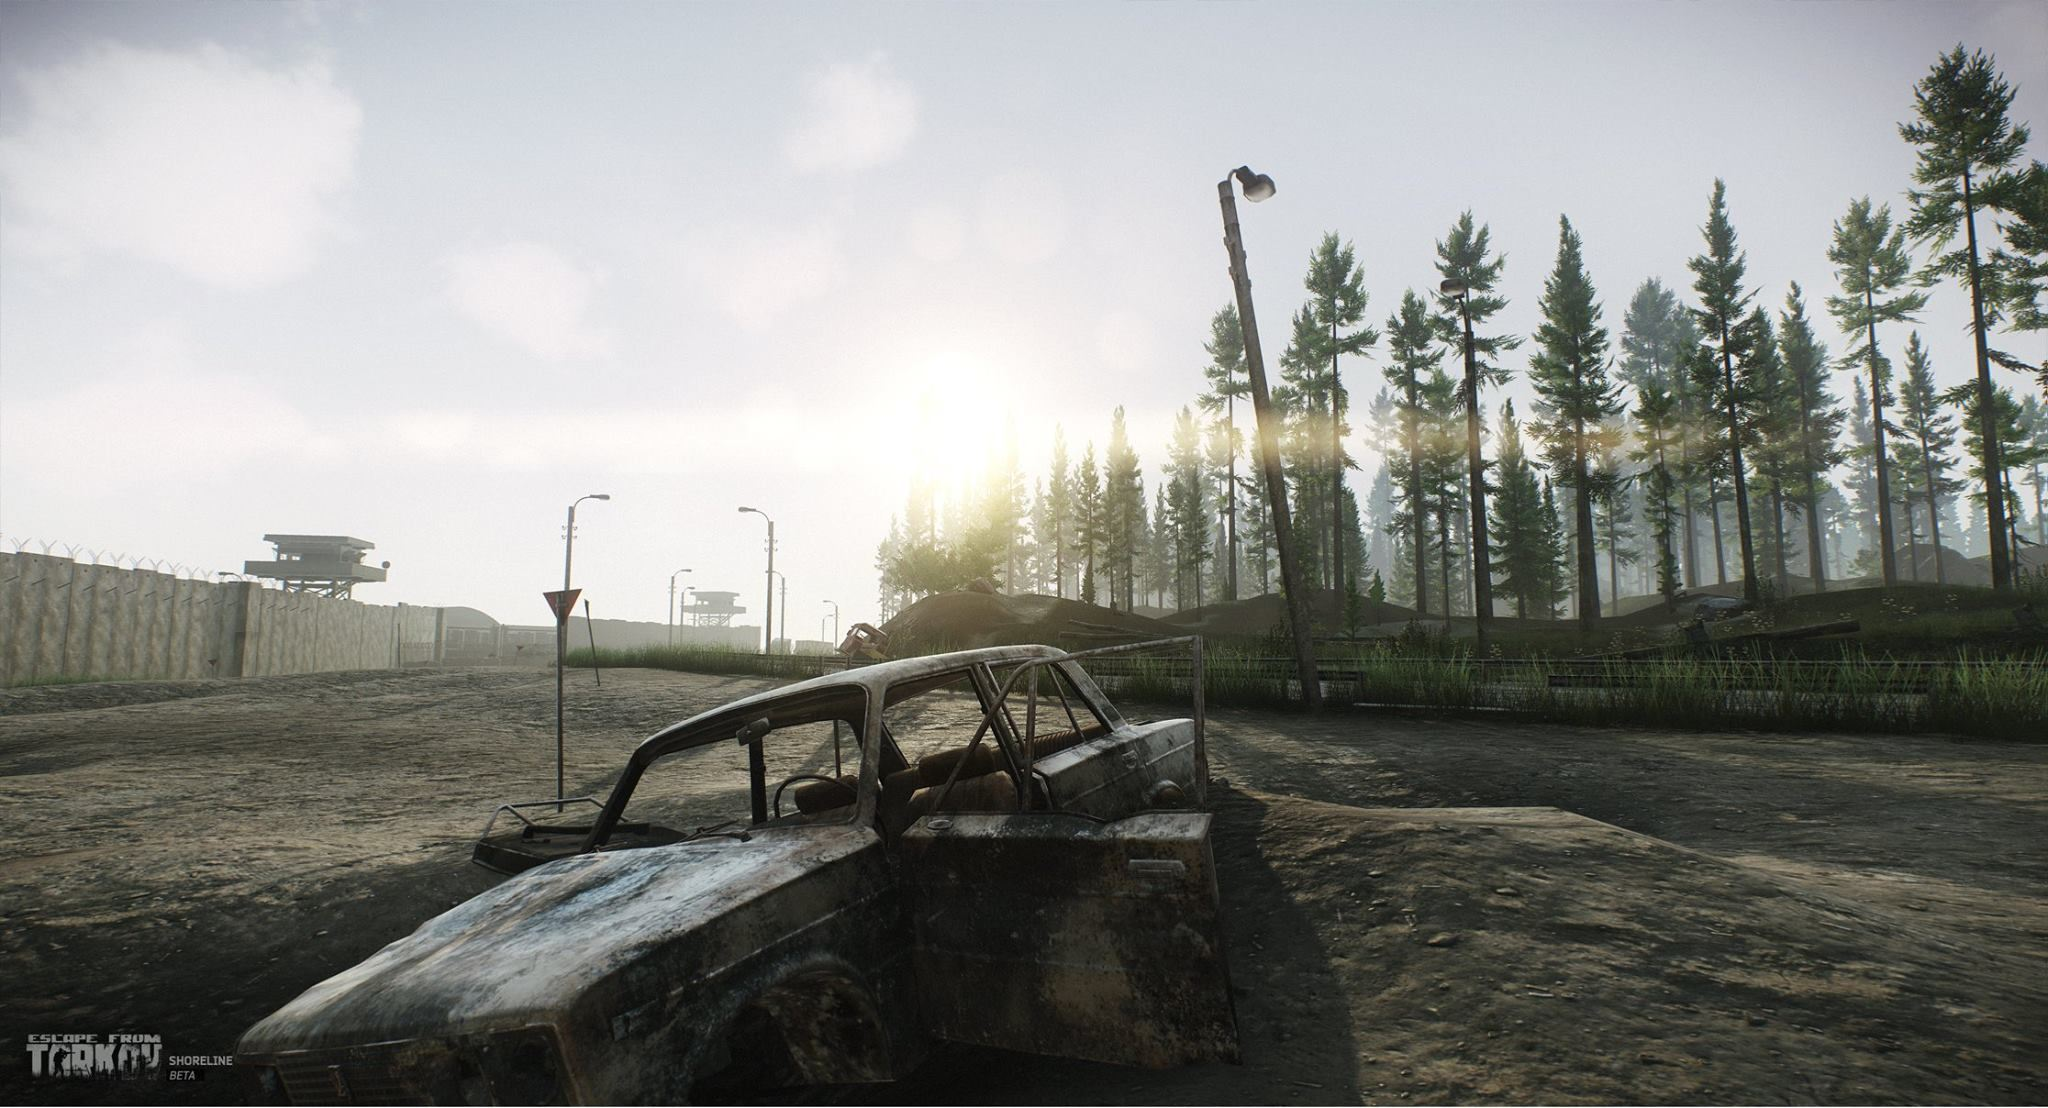 Escape from Tarkov - Shoreline Beta - Escape from Tarkov Screenshots, Скриншоты